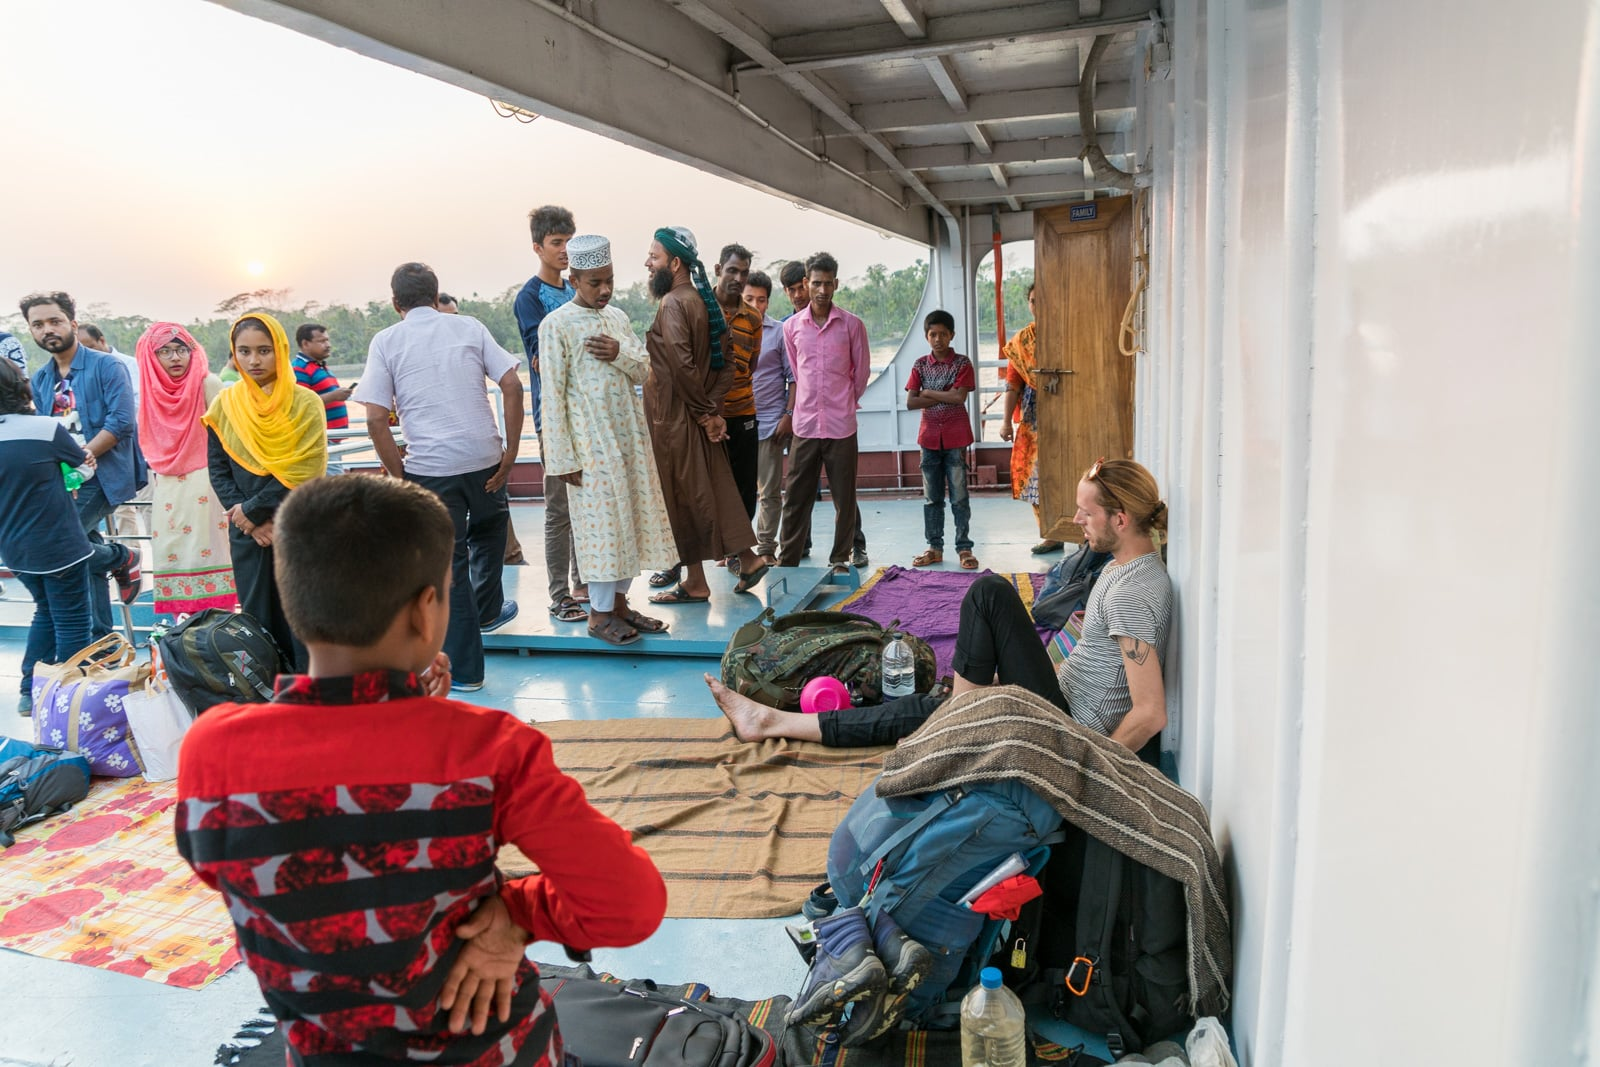 Launches from Hularhat to Dhaka, Bangladesh - People staring at a foreigner on the launch - Lost With Purpose travel blog